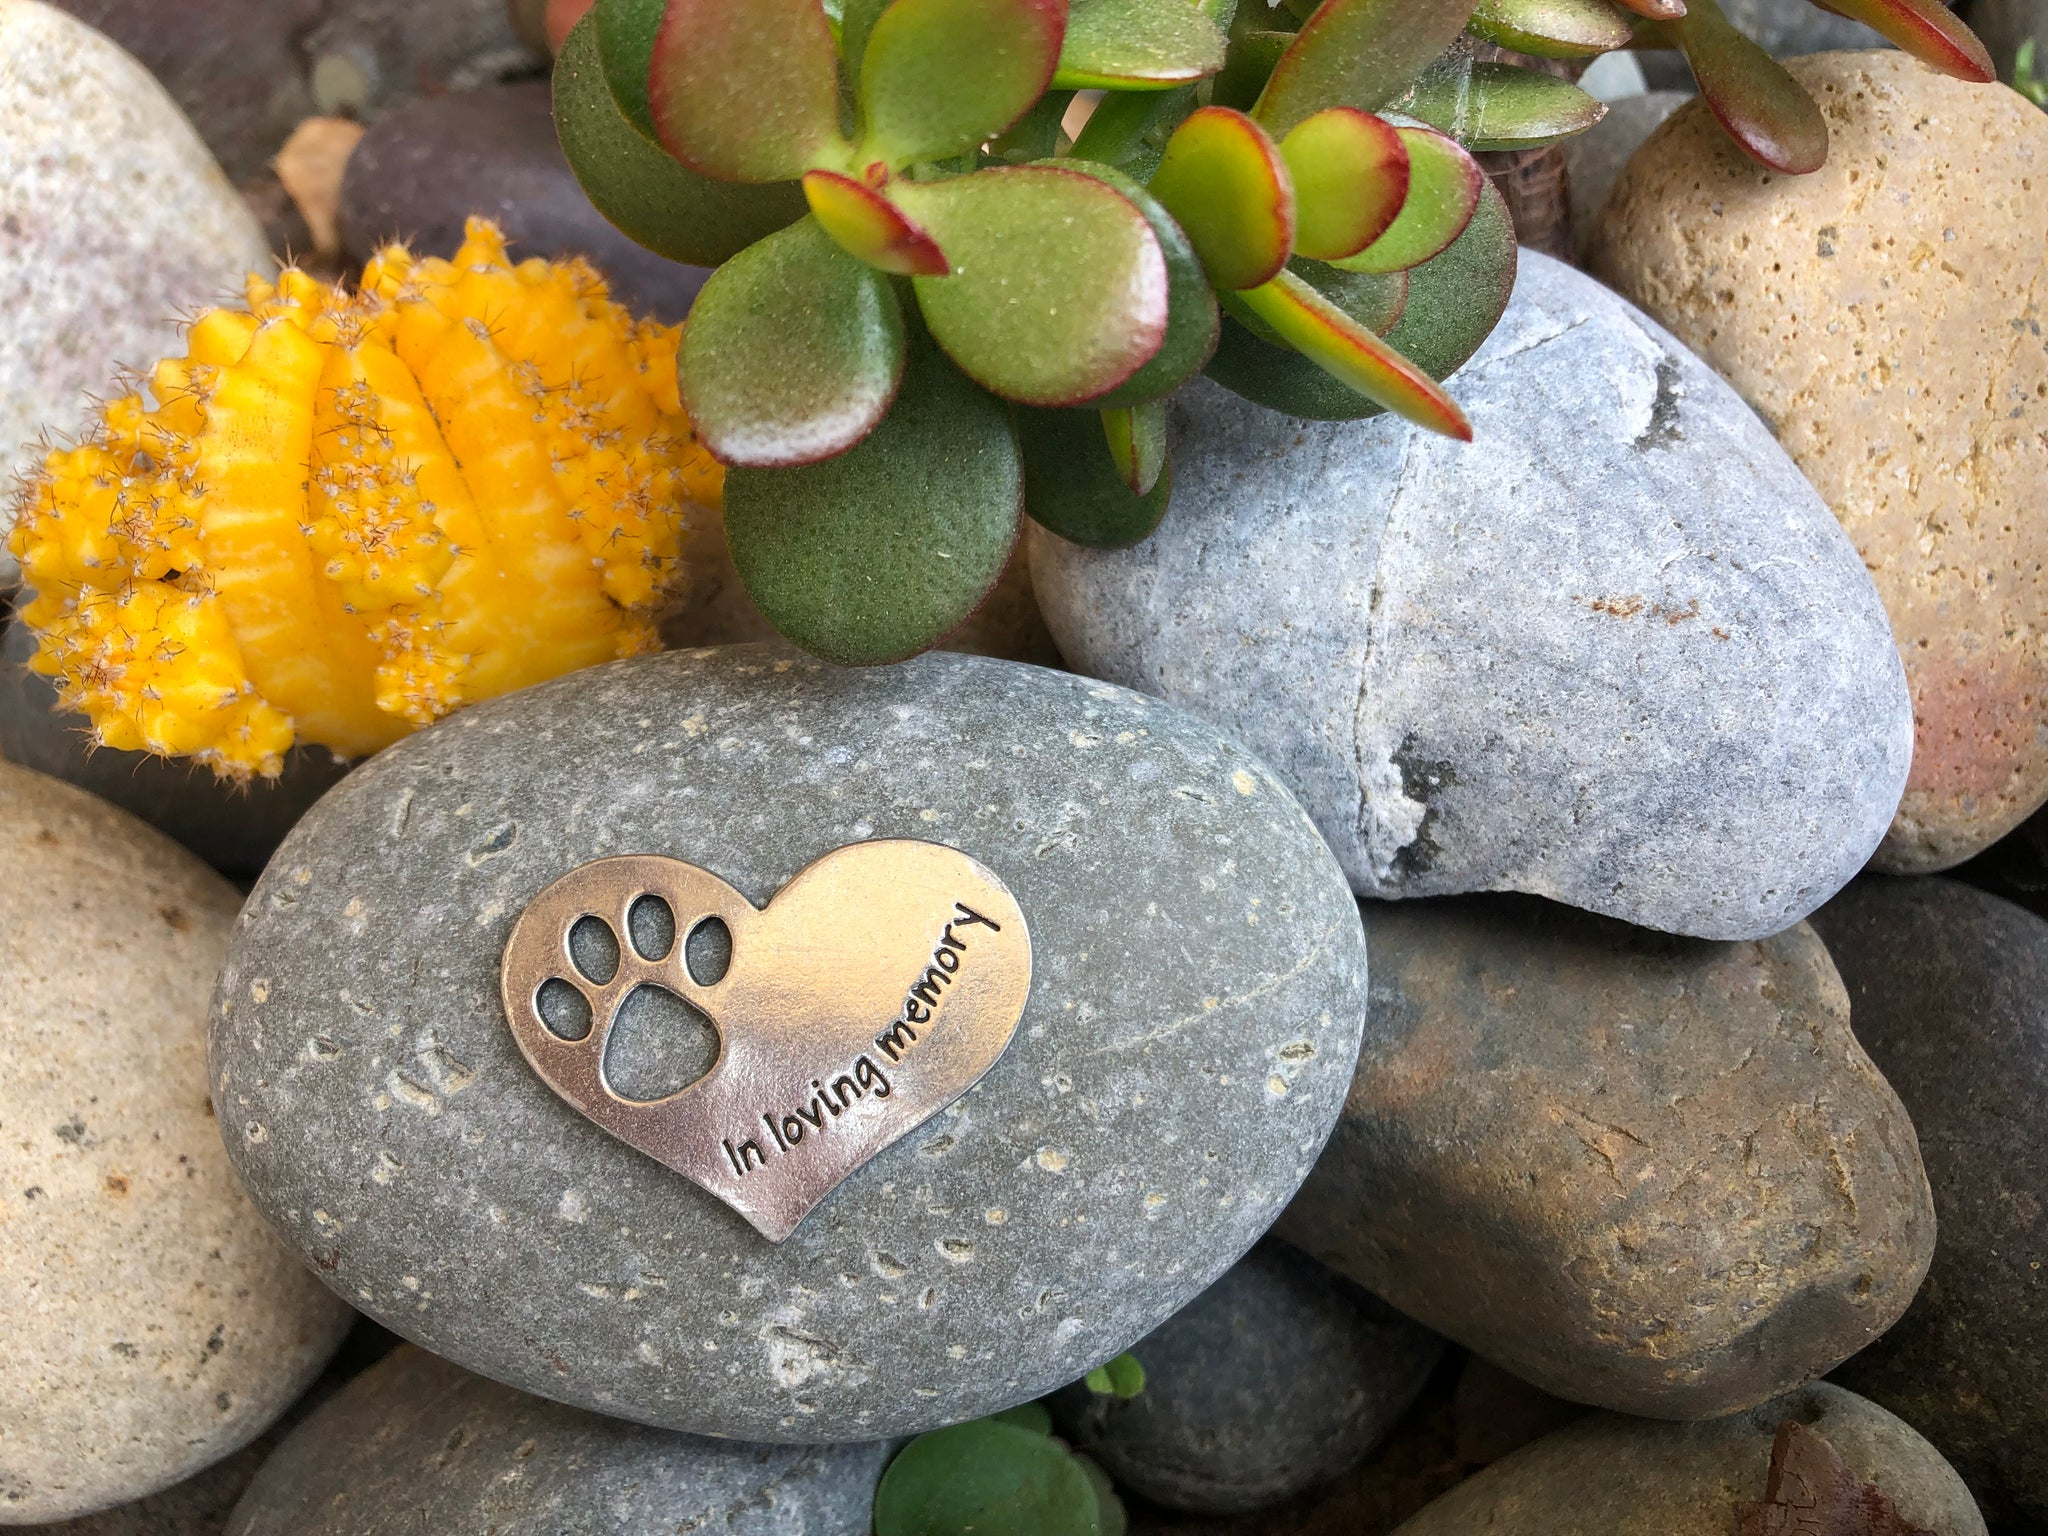 Pet Memorial Gift In Loving Memory Paw Print Stone for Dogs or Cats - Sympathy Remembrance Gift by Whitney Howard Designs